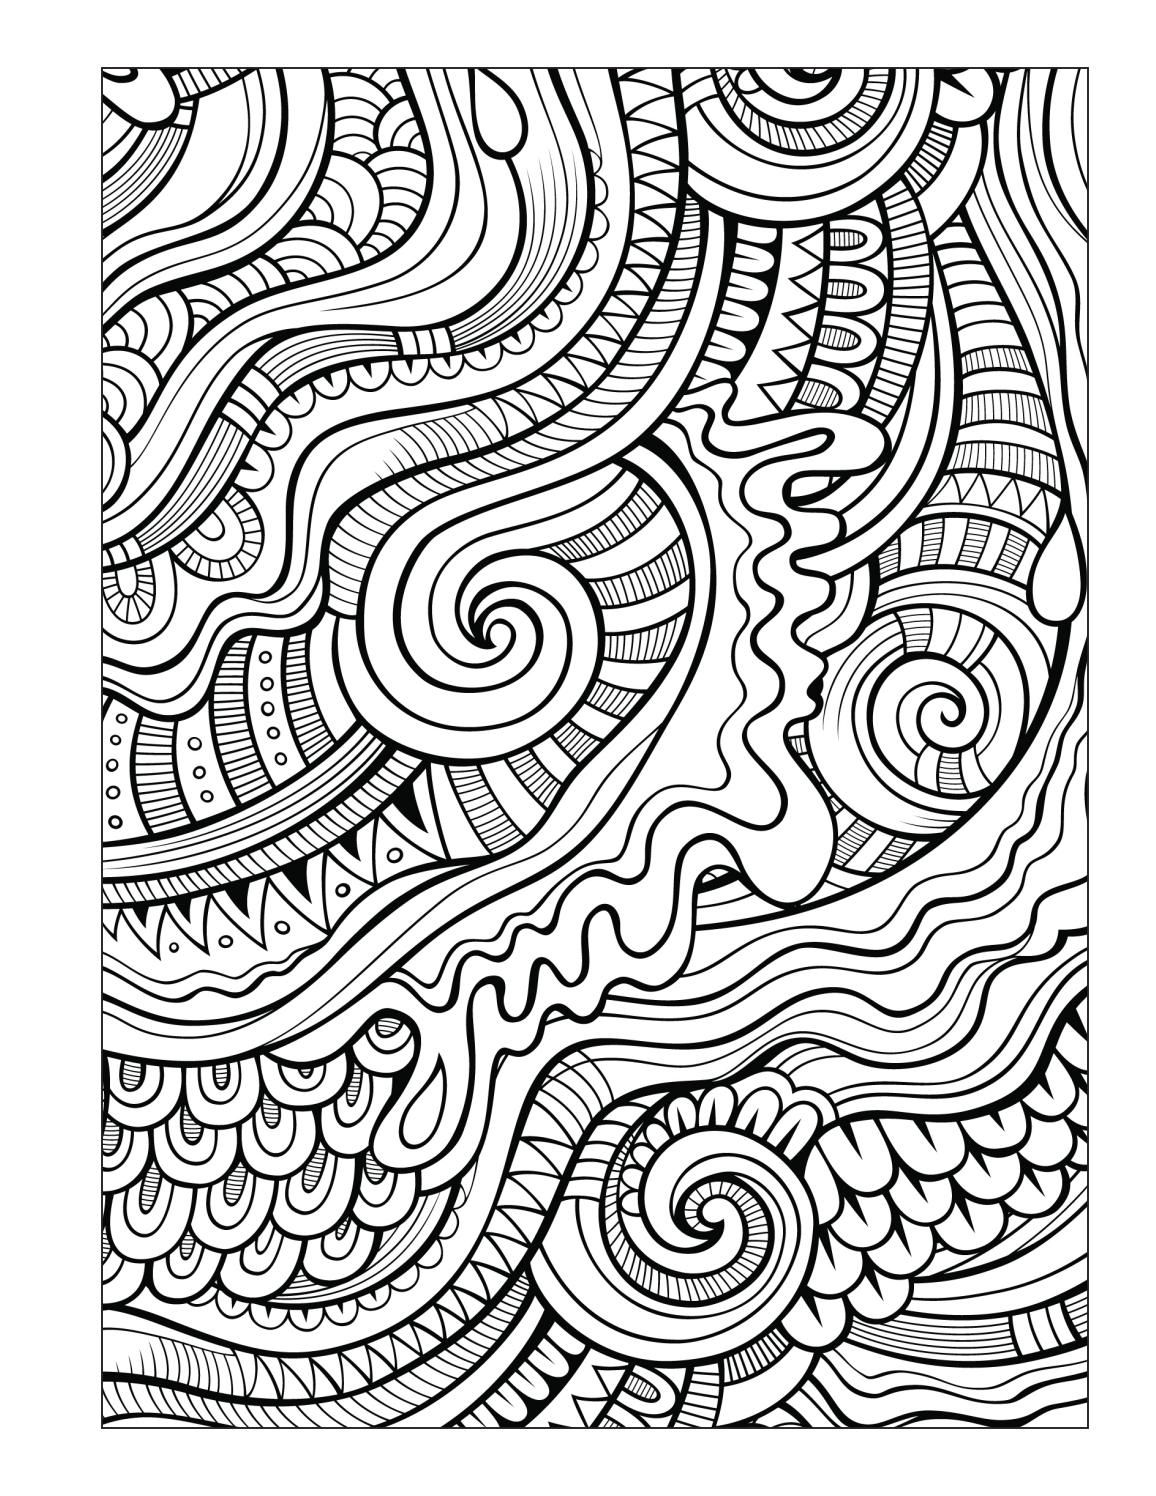 Ocean coloring book for seniors men this coloring book features many beautiful ocean designs to color